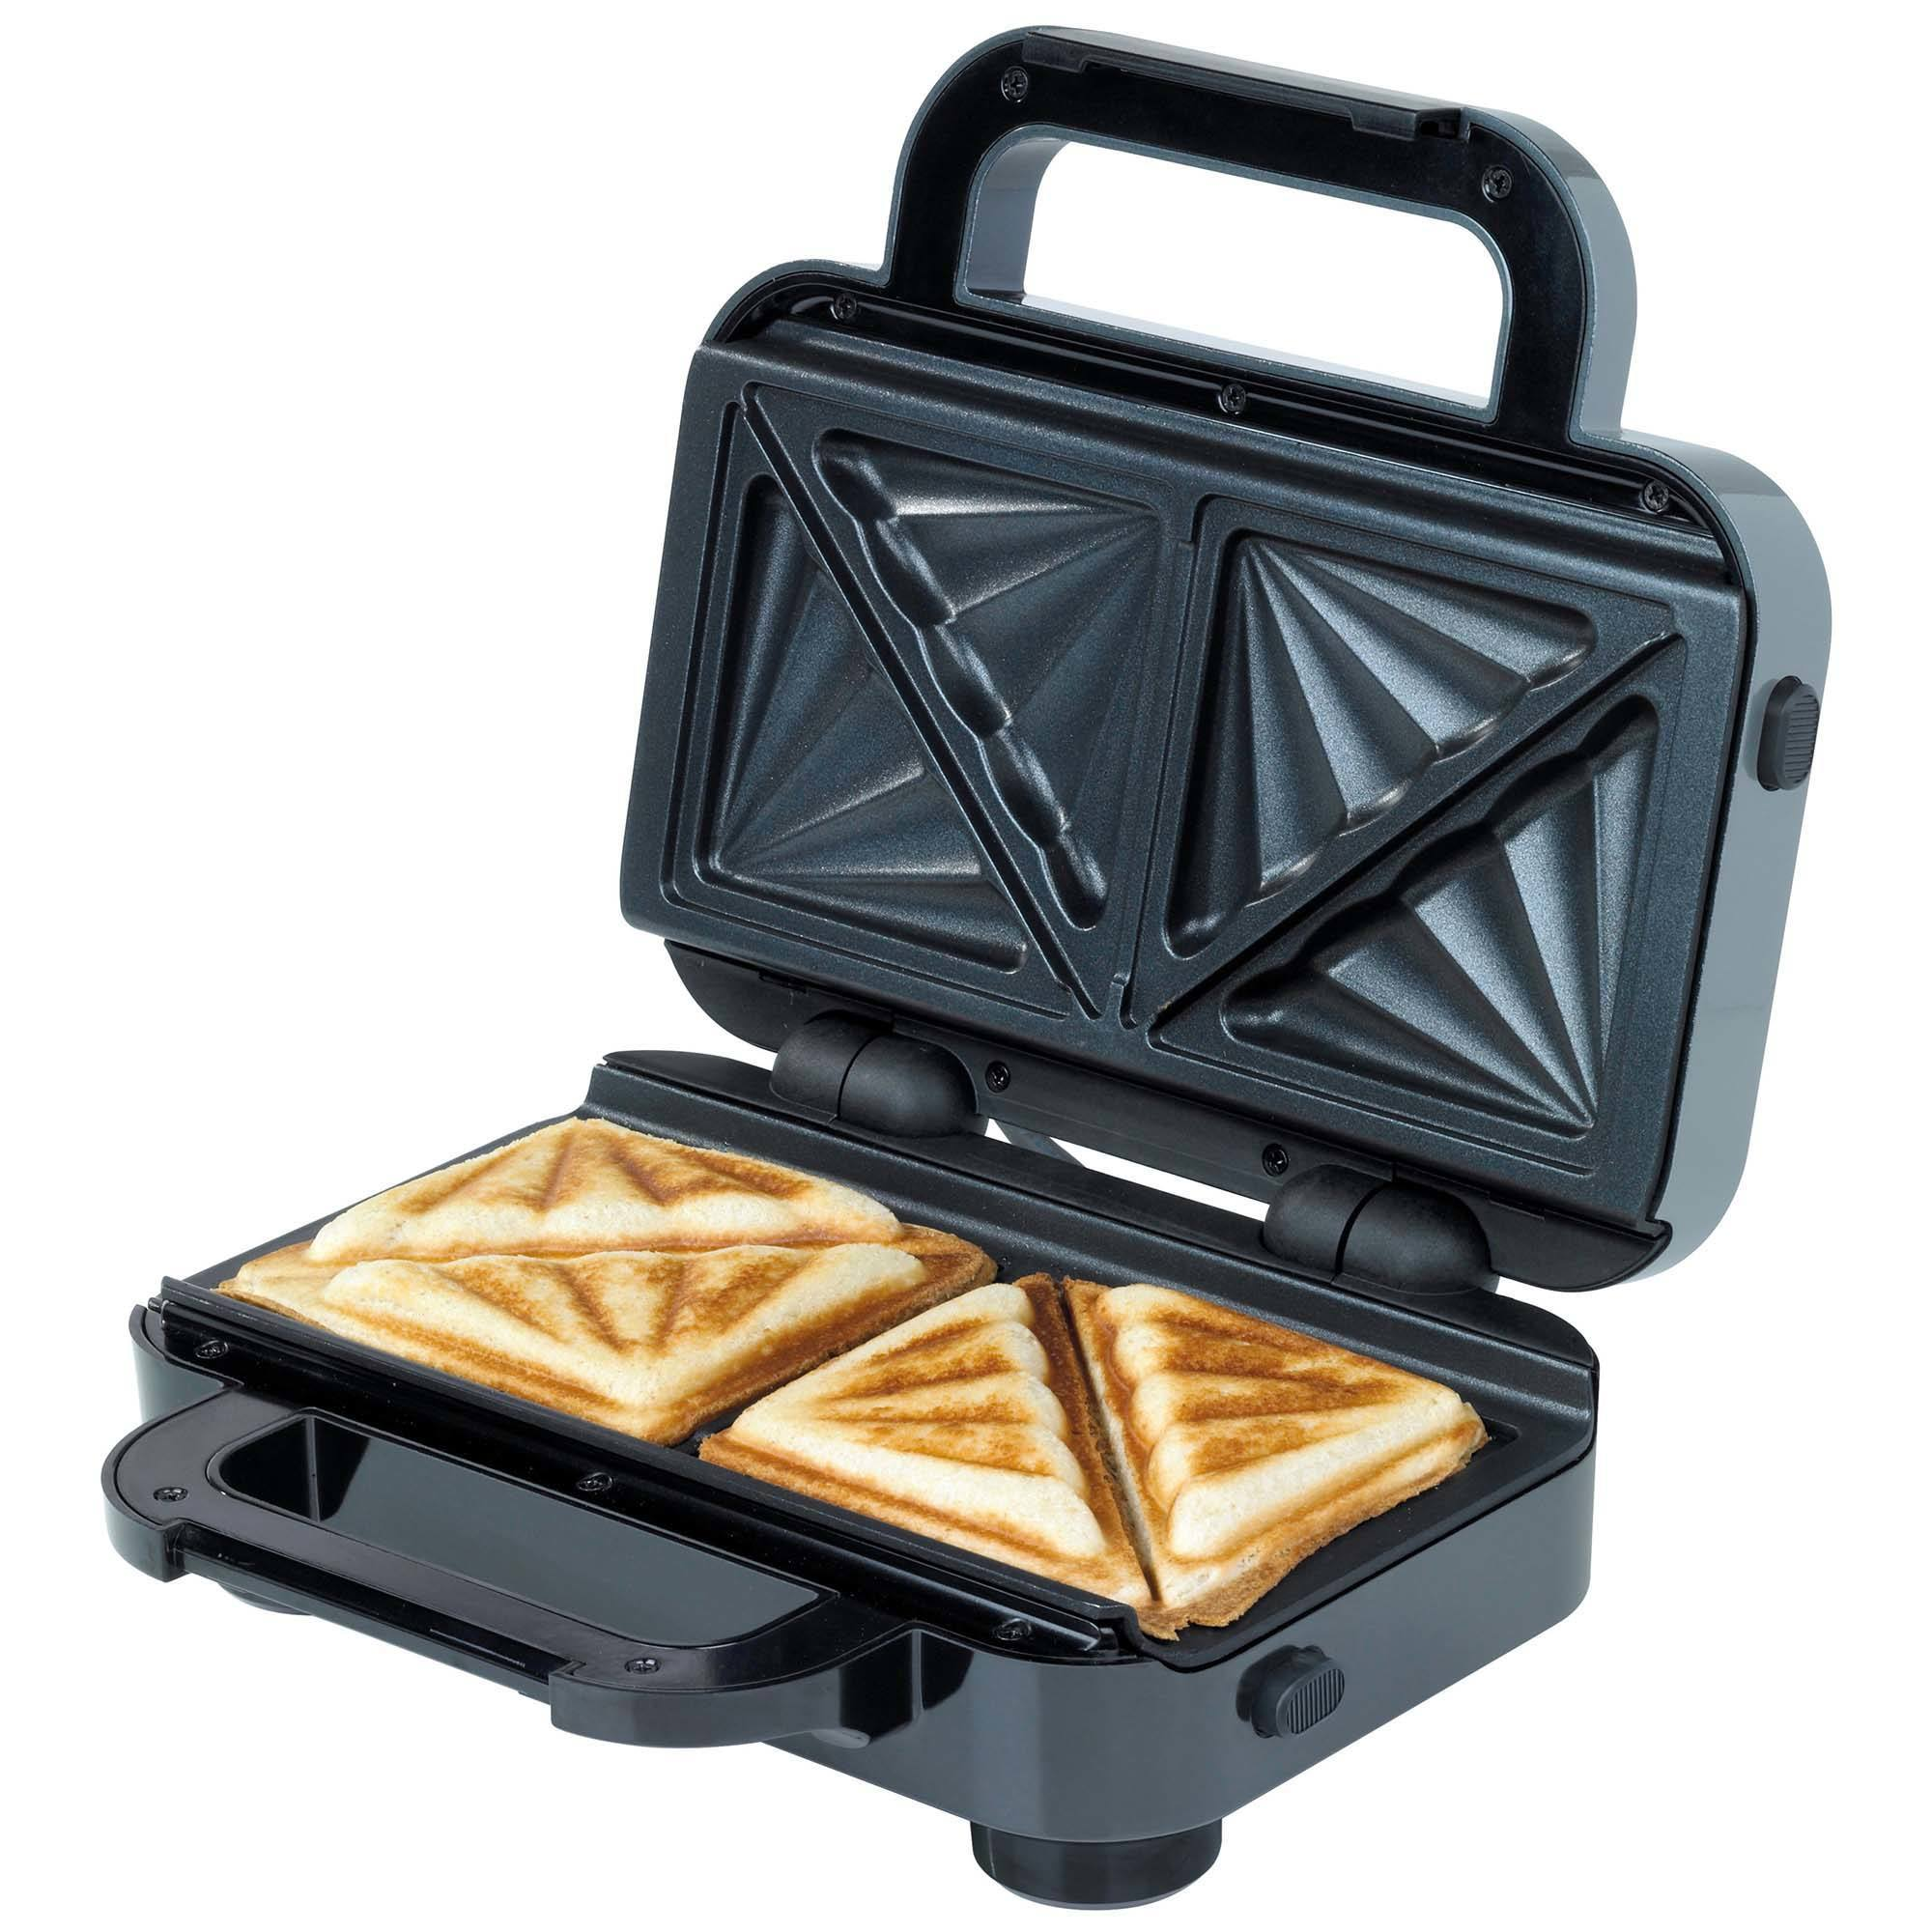 Breville 850w 2 Slice Toasted Sandwich Maker Black